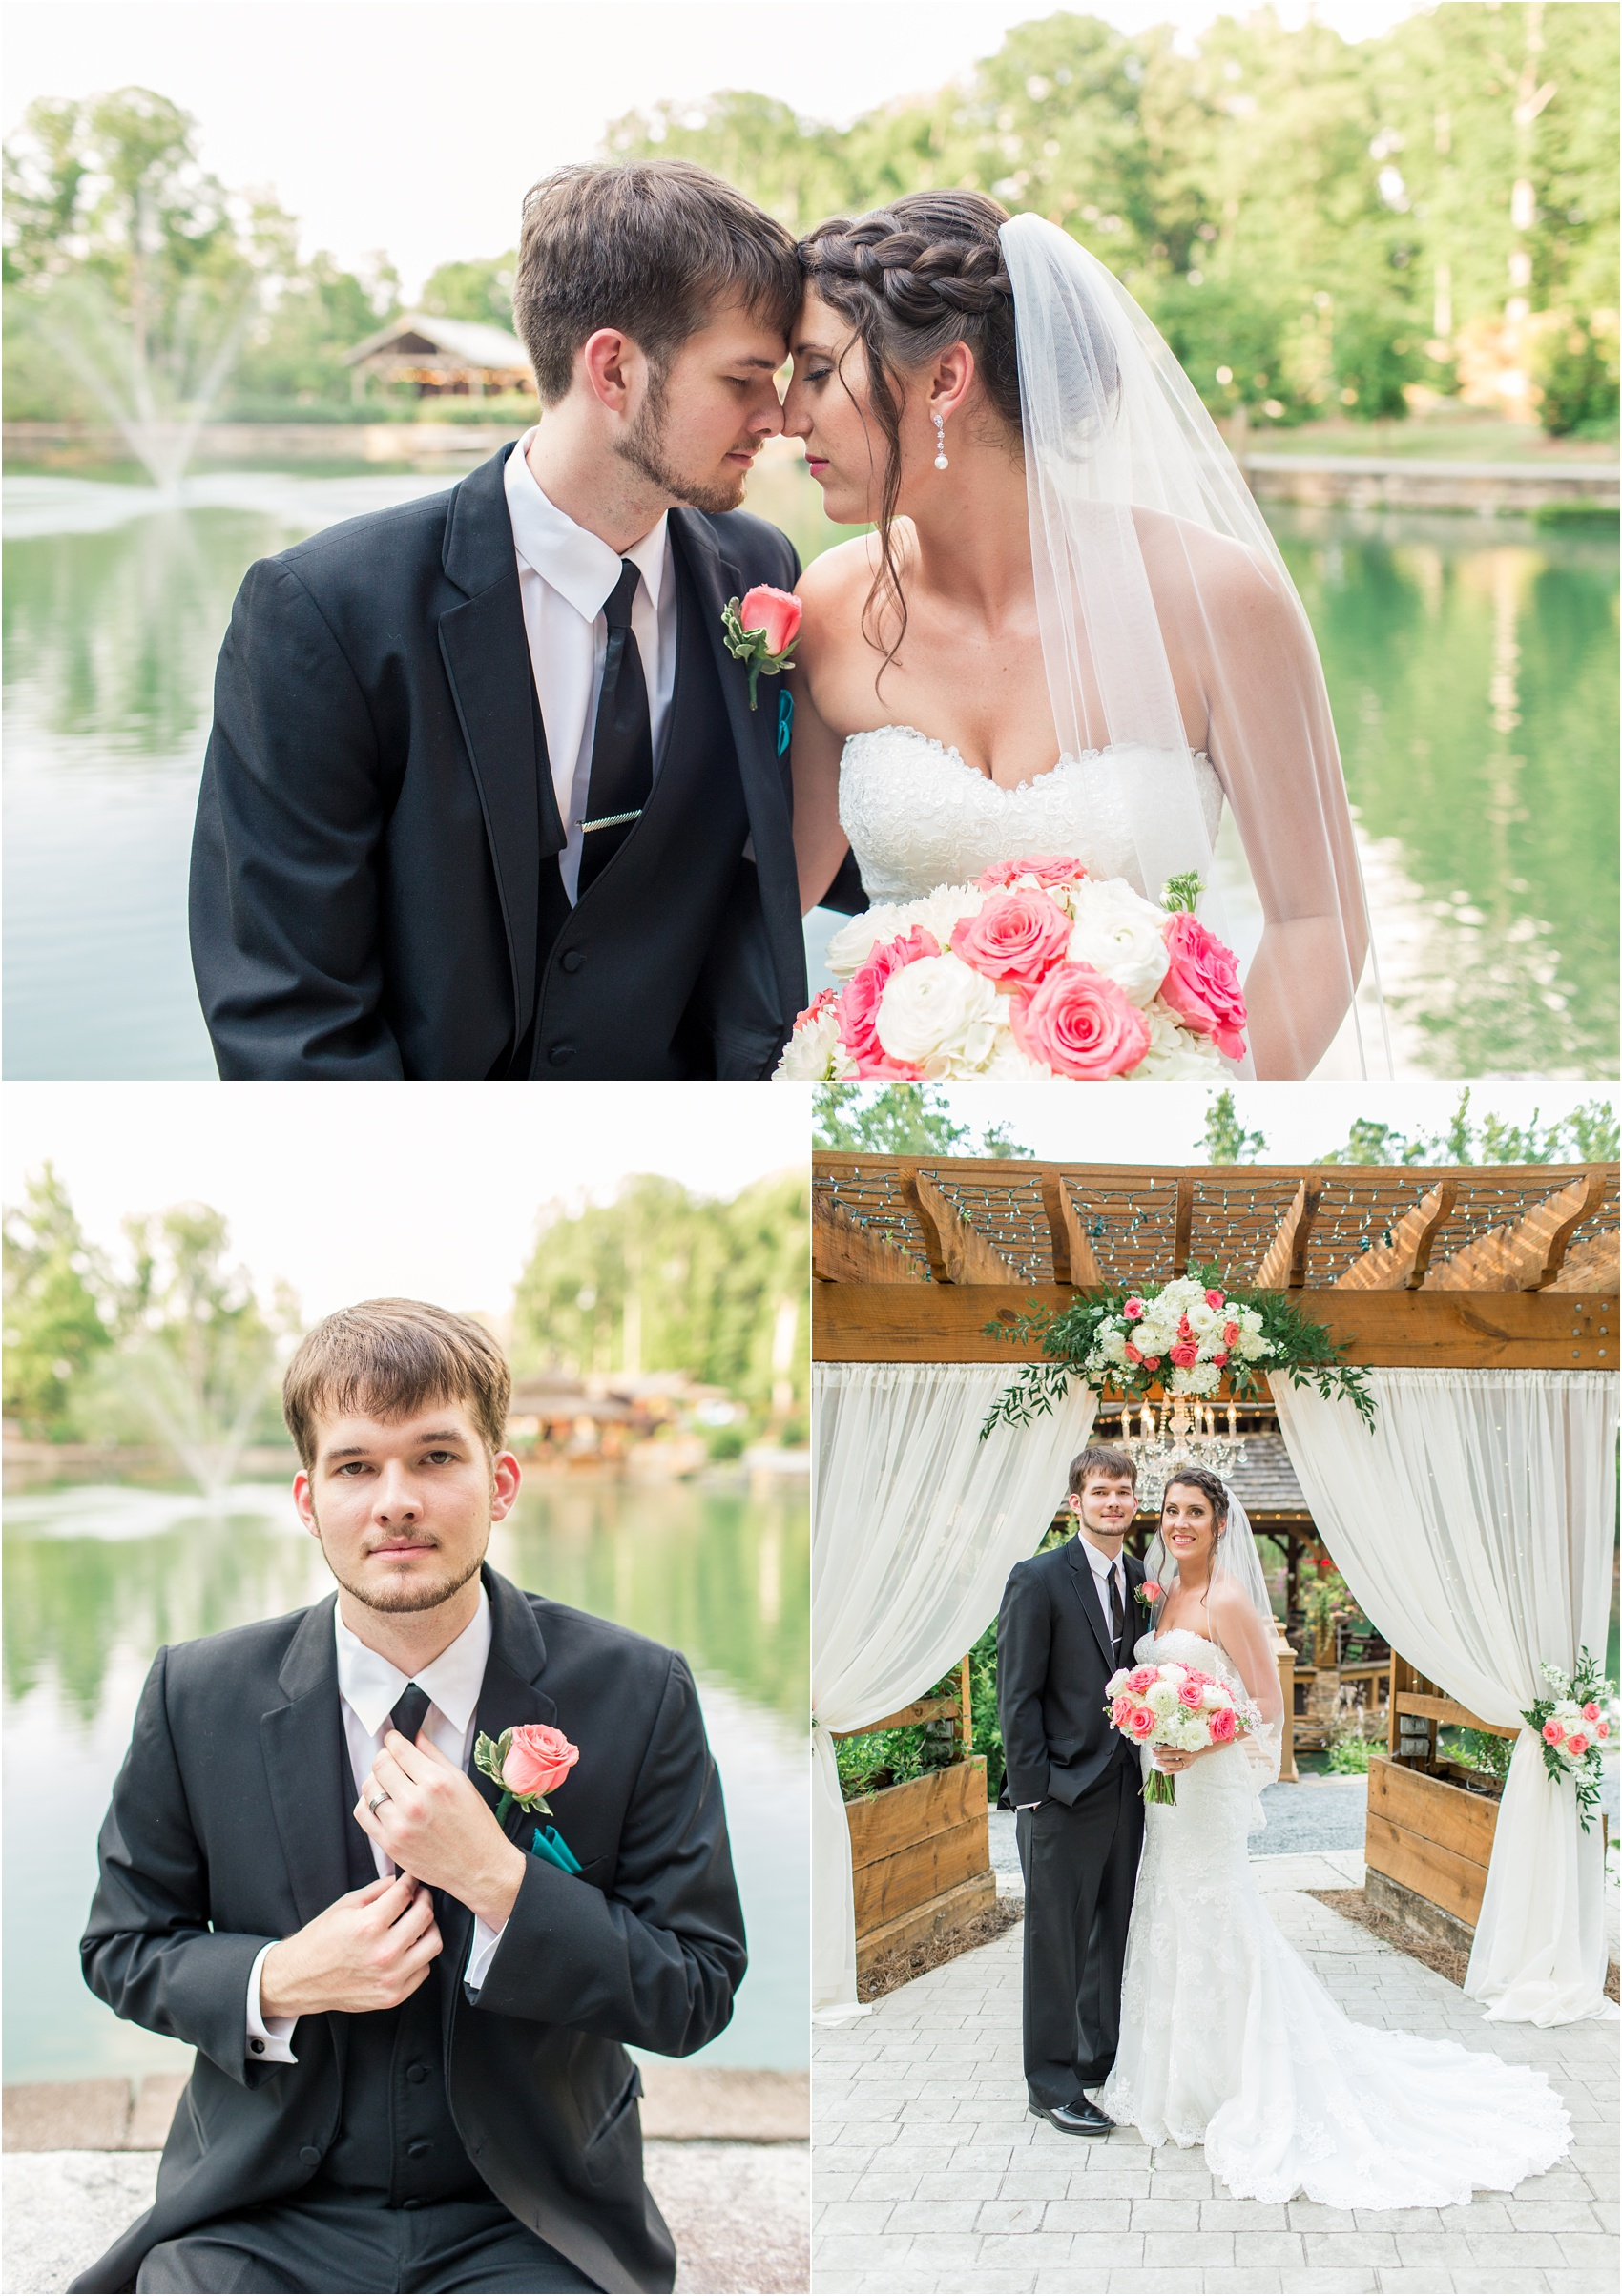 Savannah Eve Photography- Roberts-Brown Wedding- Sneak Peek-71.jpg